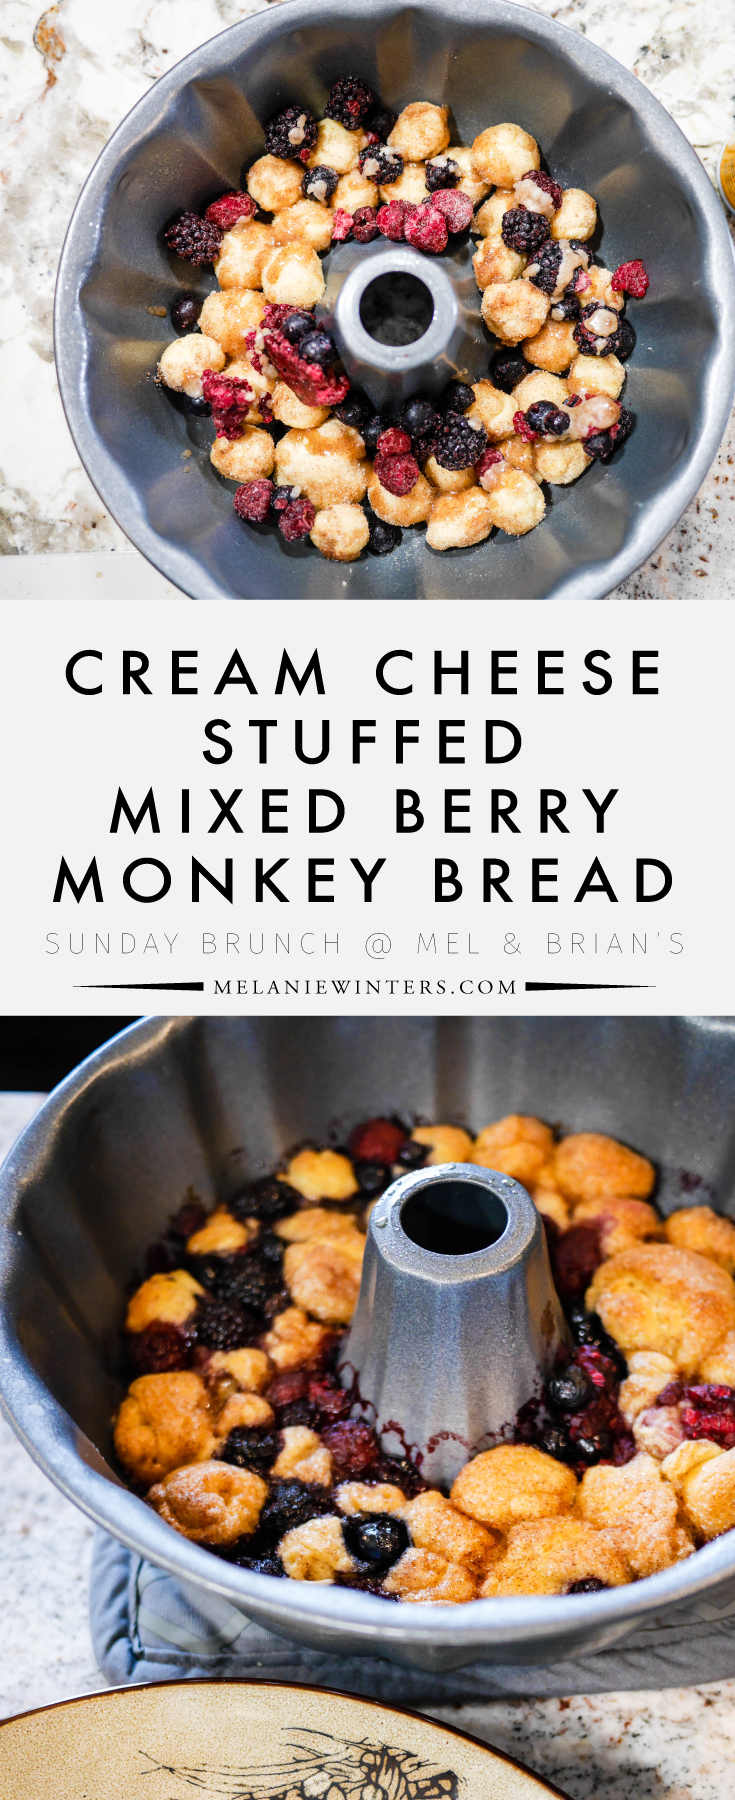 Stuffed with cream cheese and tossed with cinnamon sugar, this mixed berry monkey bread is an easy sweet addition to your brunch menu.